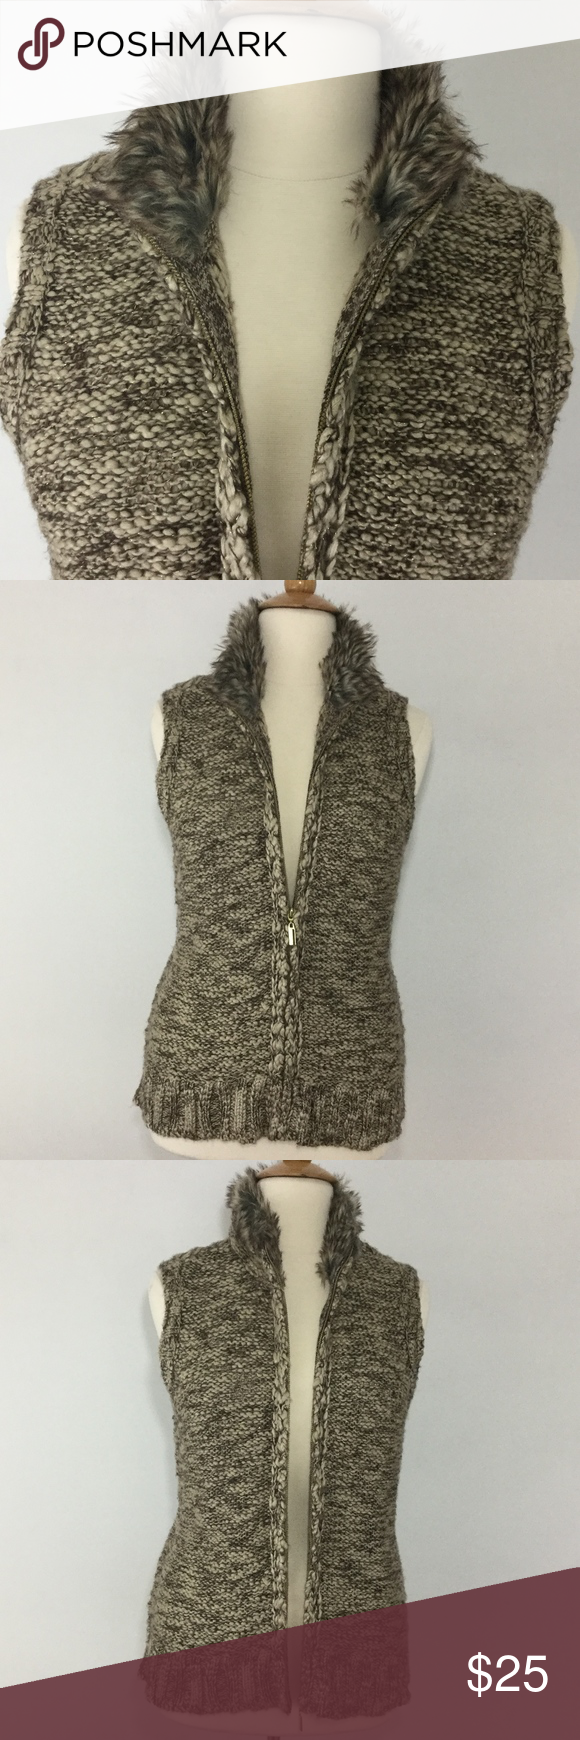 Sweater Vest w/ Faux Fur - Brown Cream & Gold | Gold sweater, Club ...